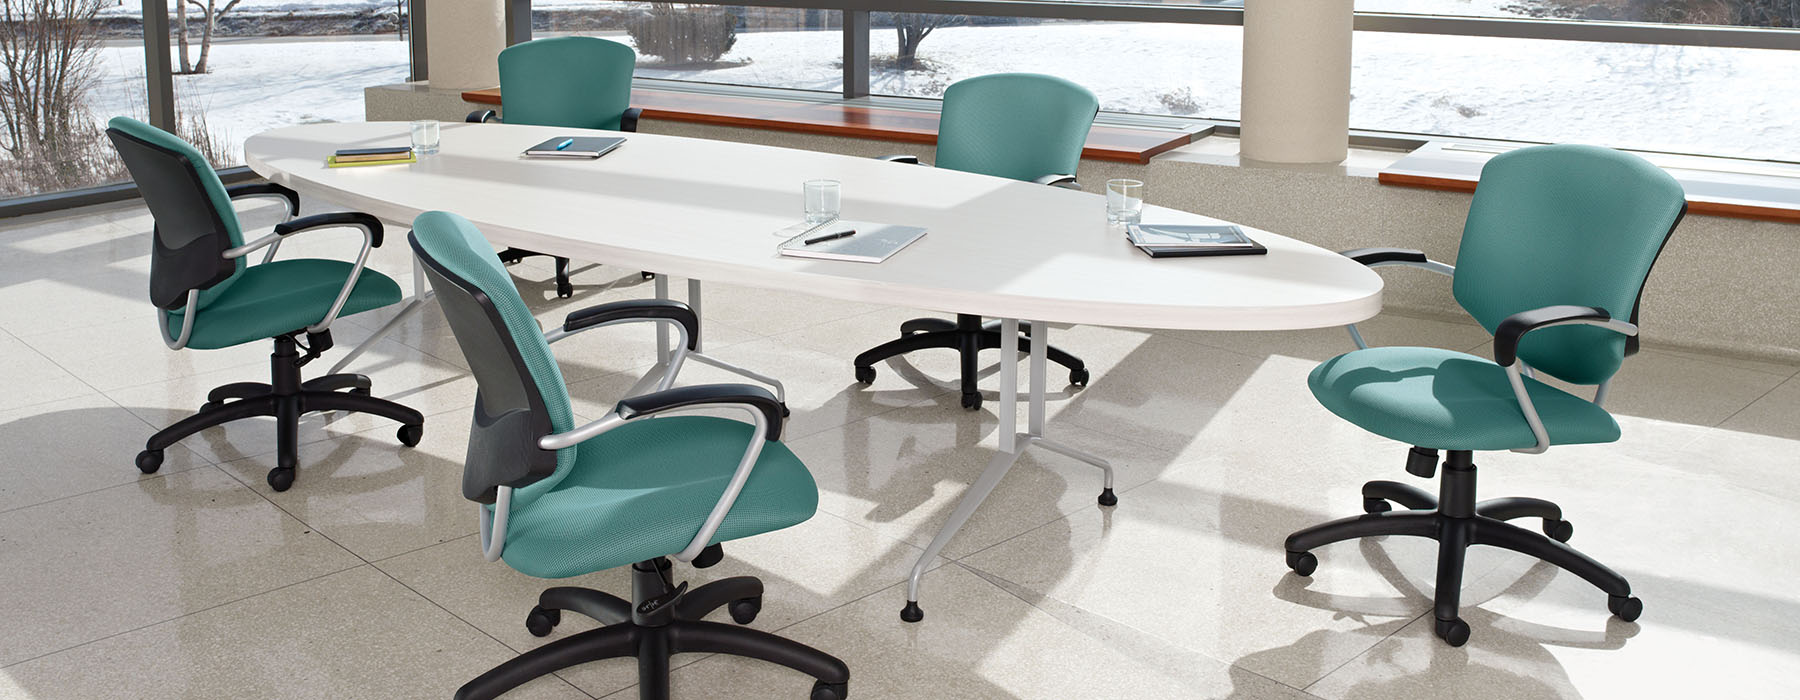 Business Furniture Warehouse New Office Furniture - Global conference table